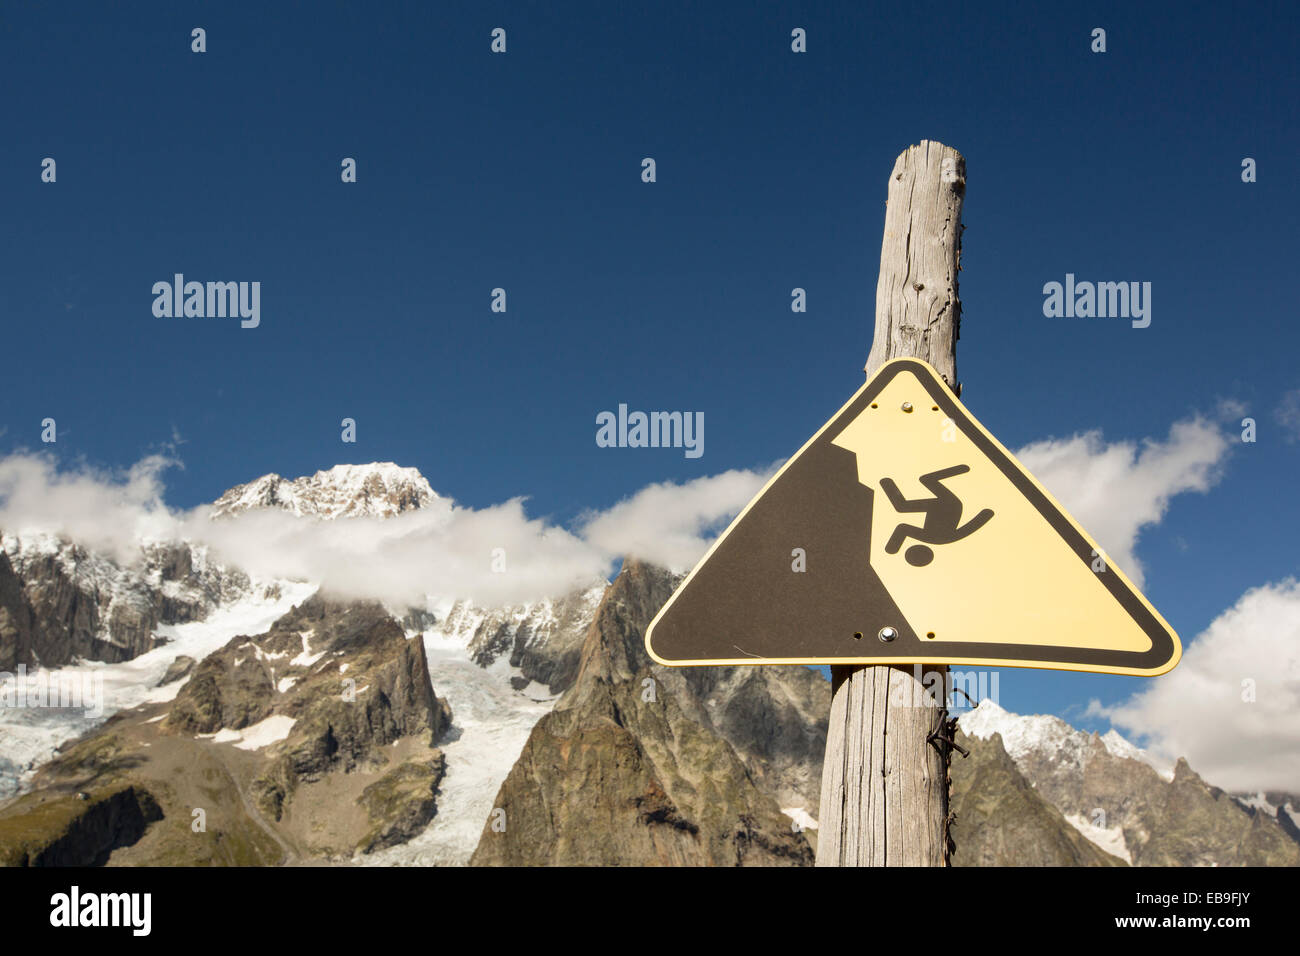 Looking towards Mont Blanc and the Glacier du Miage from above Val Veny, Italy, with a warning sign for skiers. - Stock Image